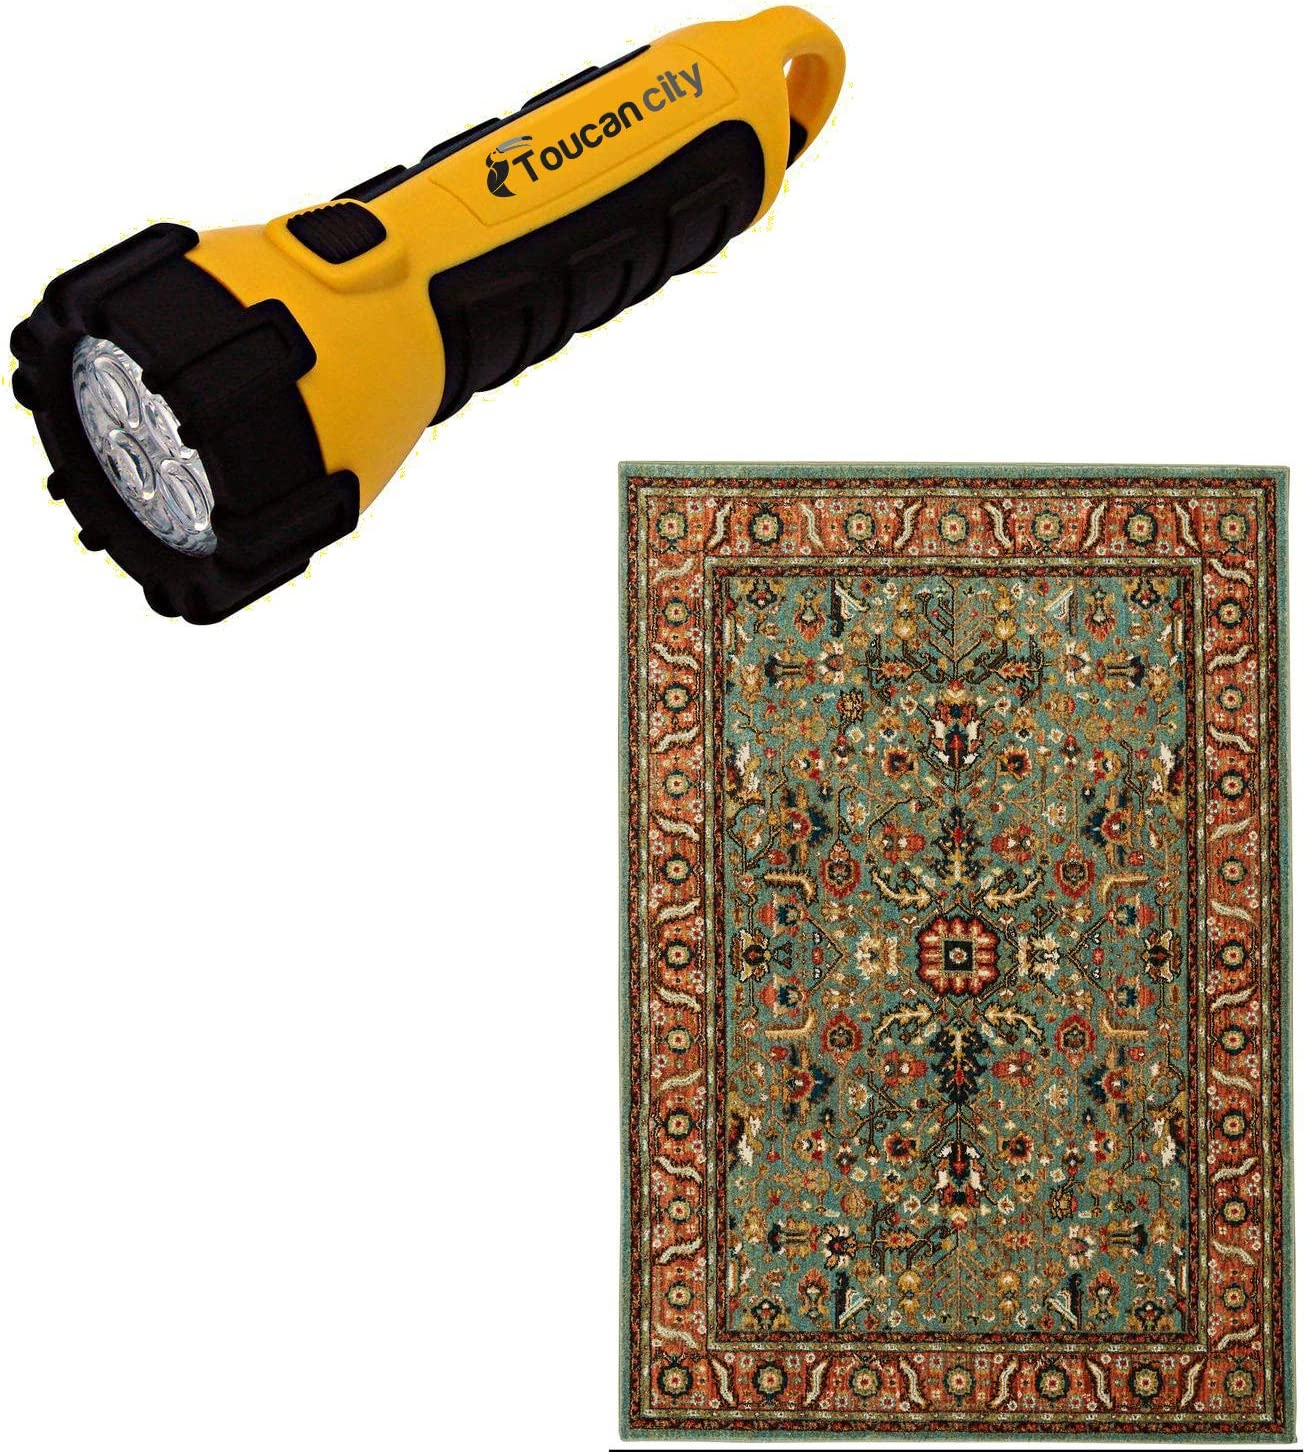 Toucan City LED Flashlight and Home Decorators Collection Mariah Aquamarine 5 ft. x 7 ft. Floral Area Rug 635602